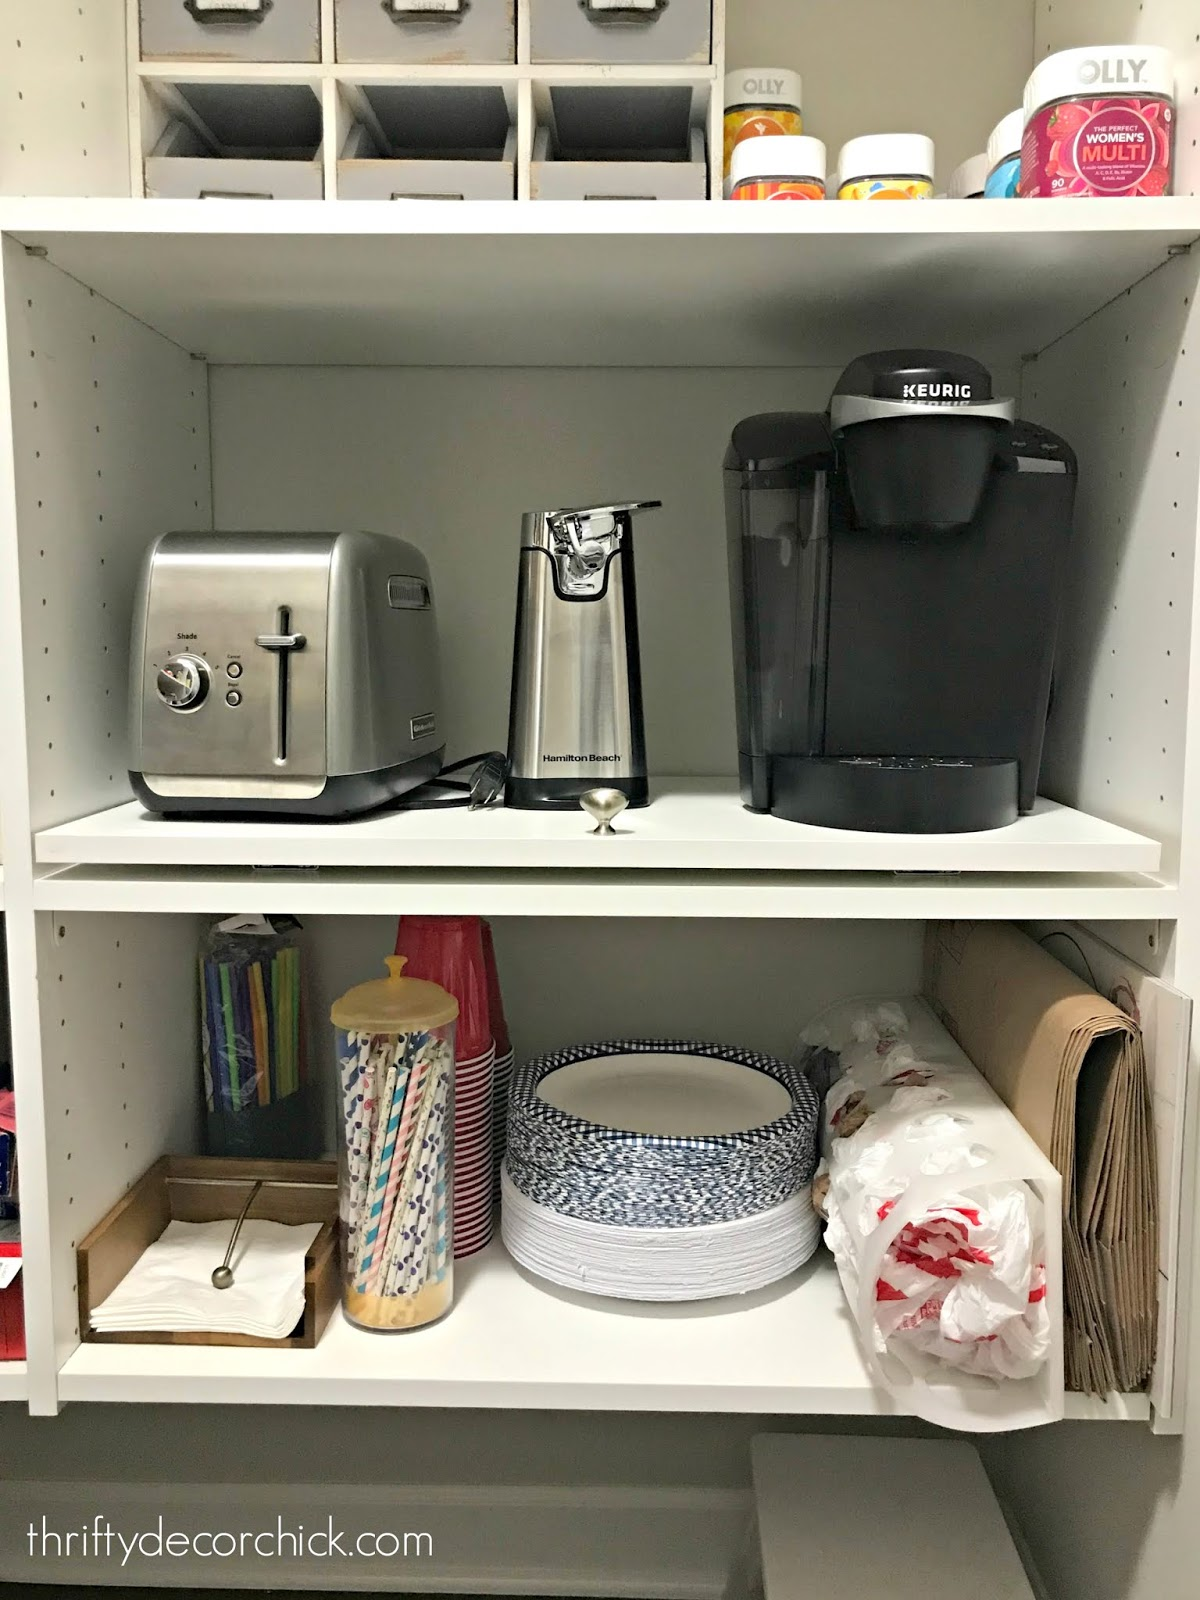 Do It Yourself Pull Out Shelf For Appliances In Pantry From Thrifty Decor Chick